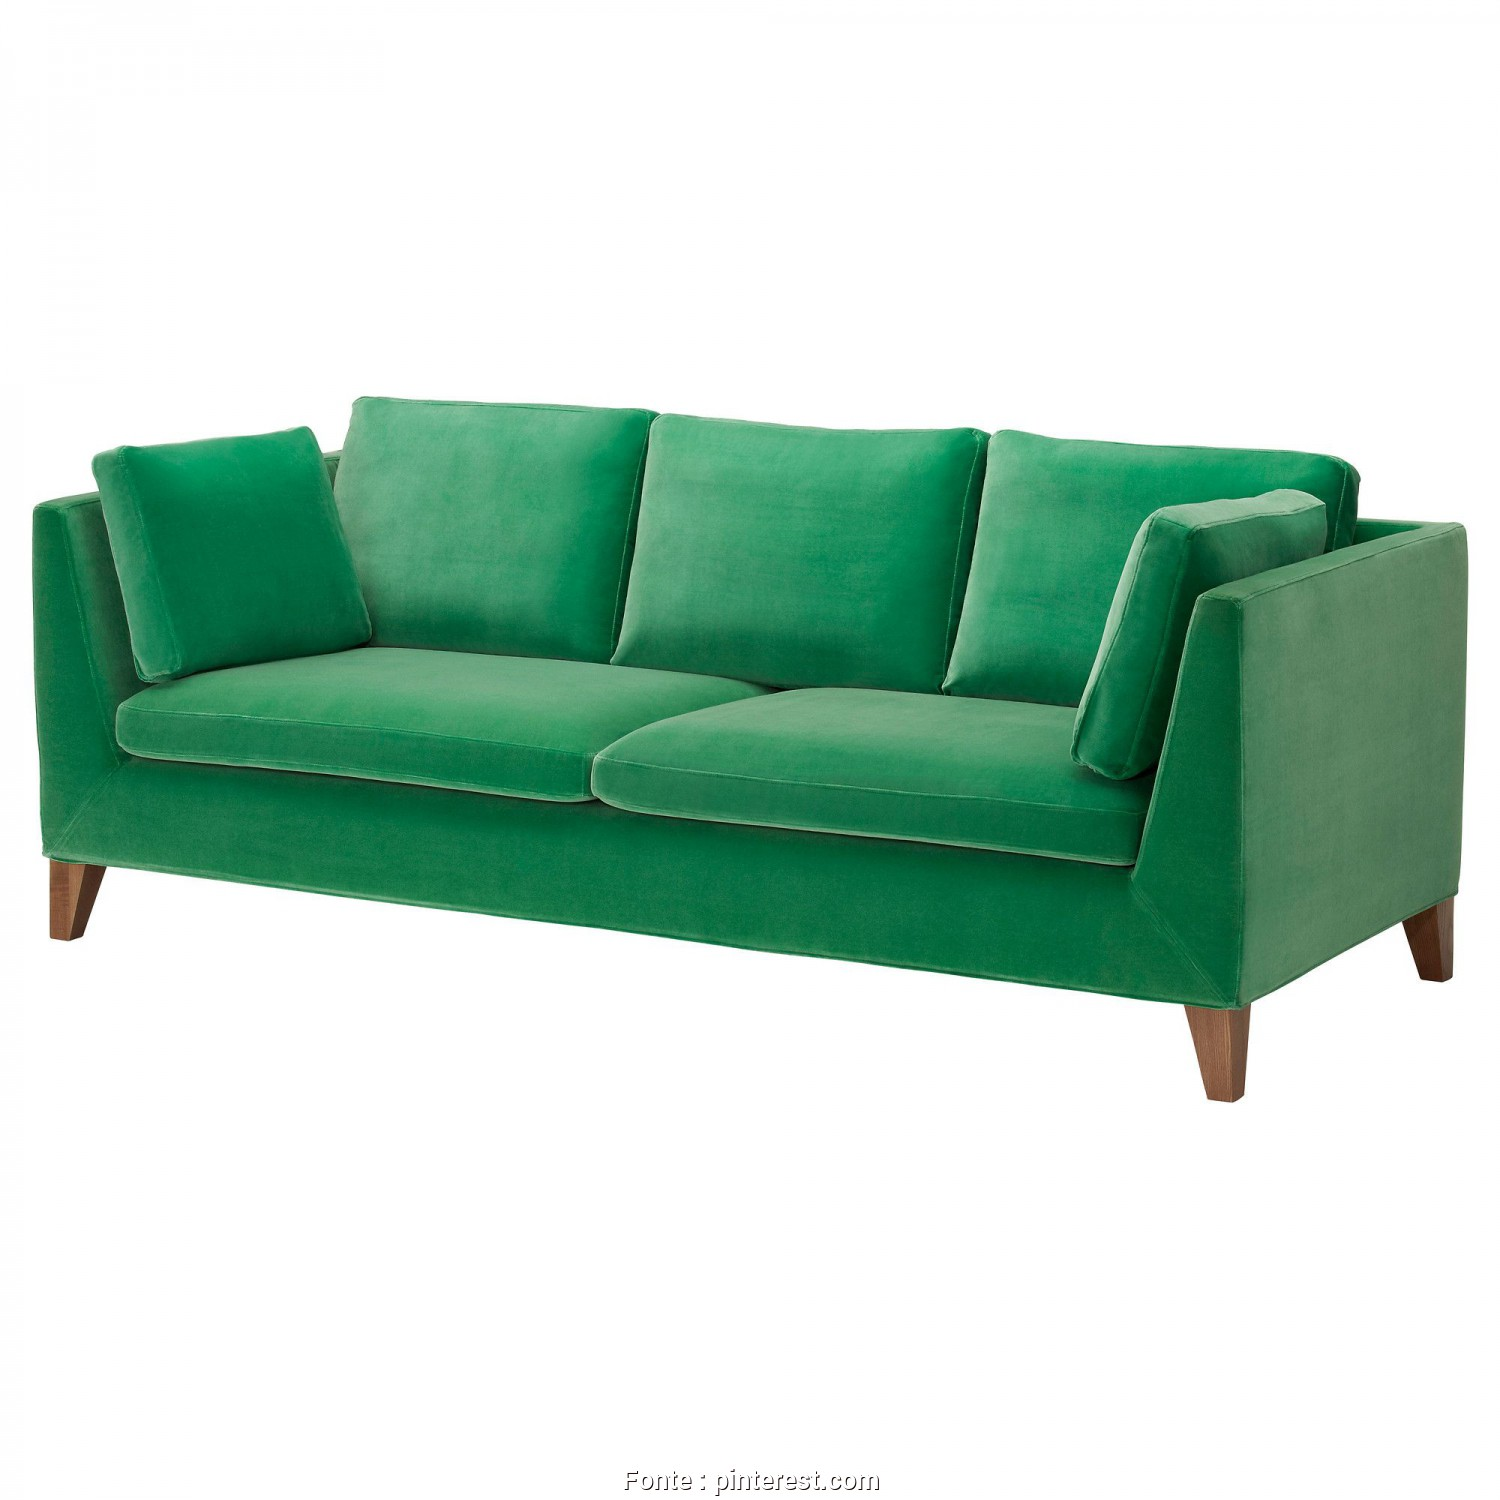 Divano Ikea Stockholm Verde, Costoso Not Gonna Lie. Pretty In Love With This, @IKEA Sofa! // STOCKHOLM In Sandbacka Green